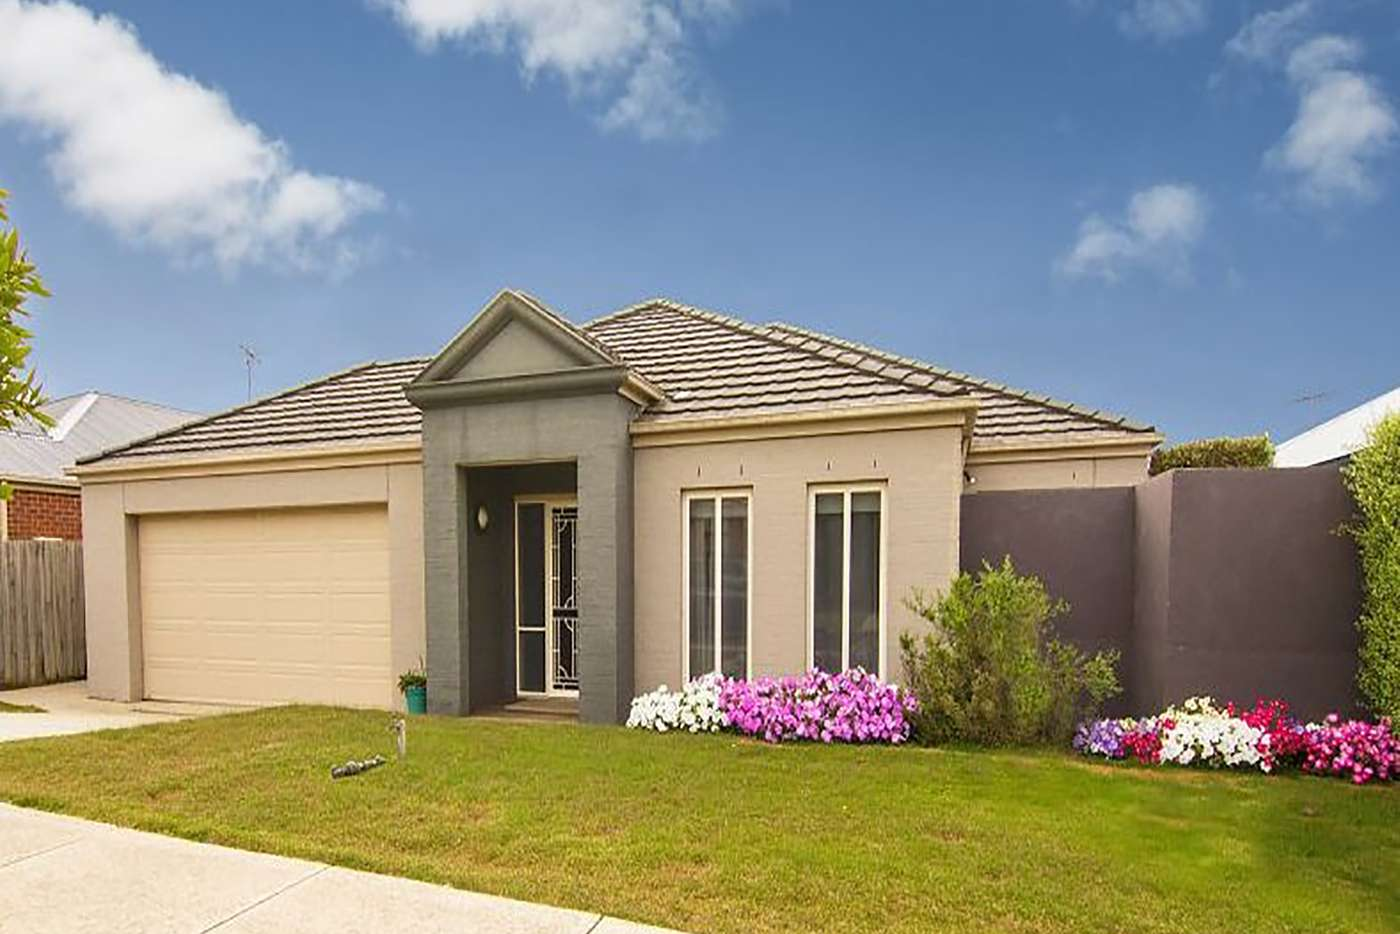 Main view of Homely house listing, 4/13 Hewat Drive, Highton VIC 3216